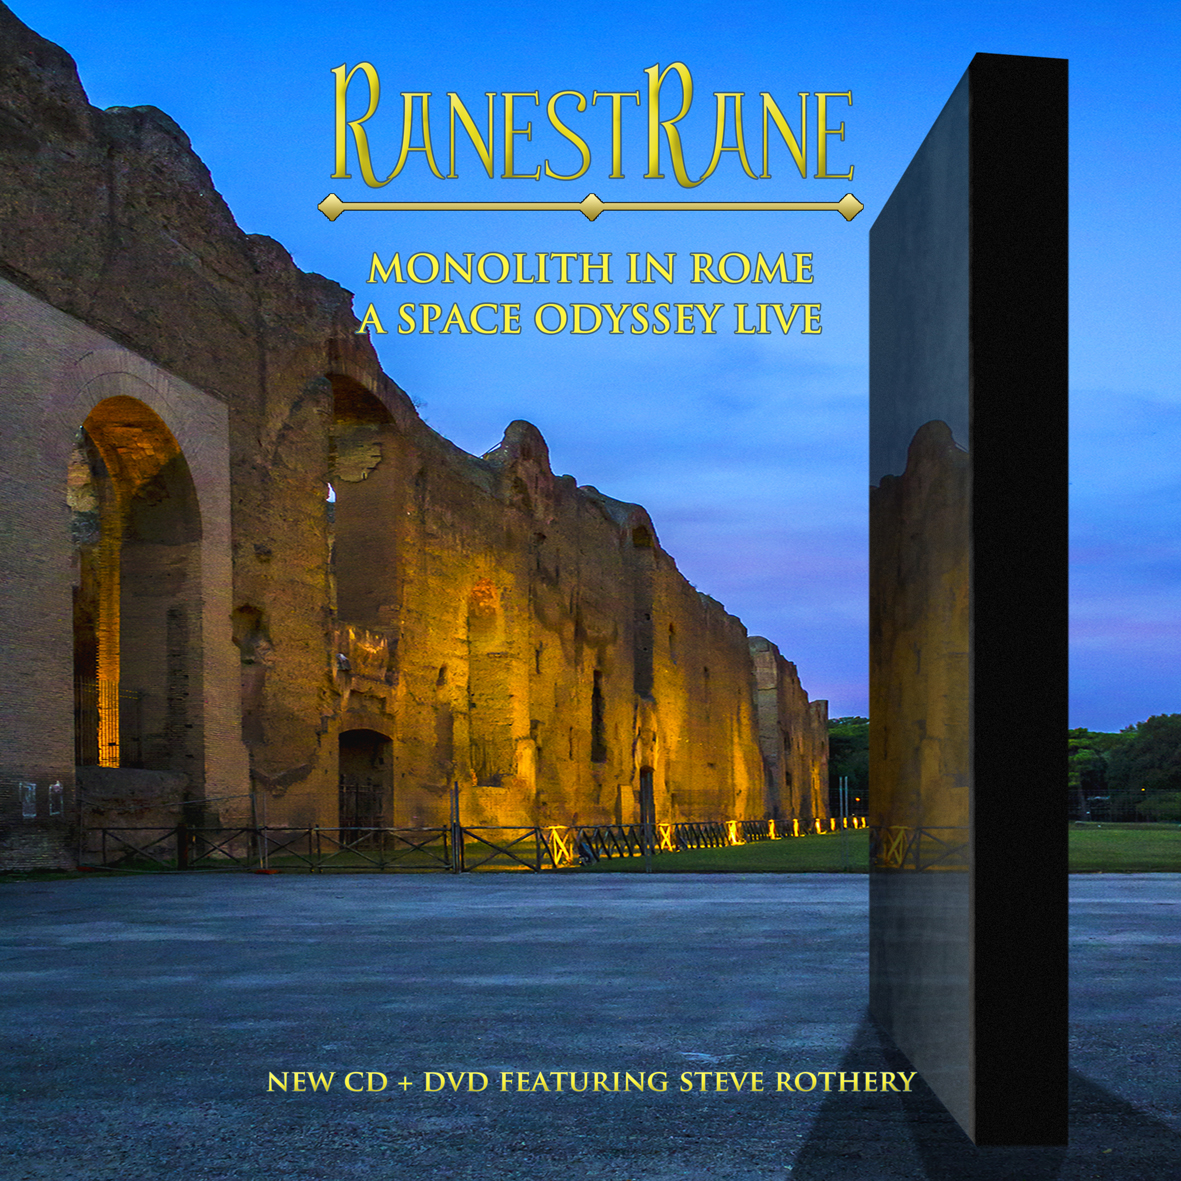 RanestRane - Monolith In Rome  A Space Odyssey Live (featuring